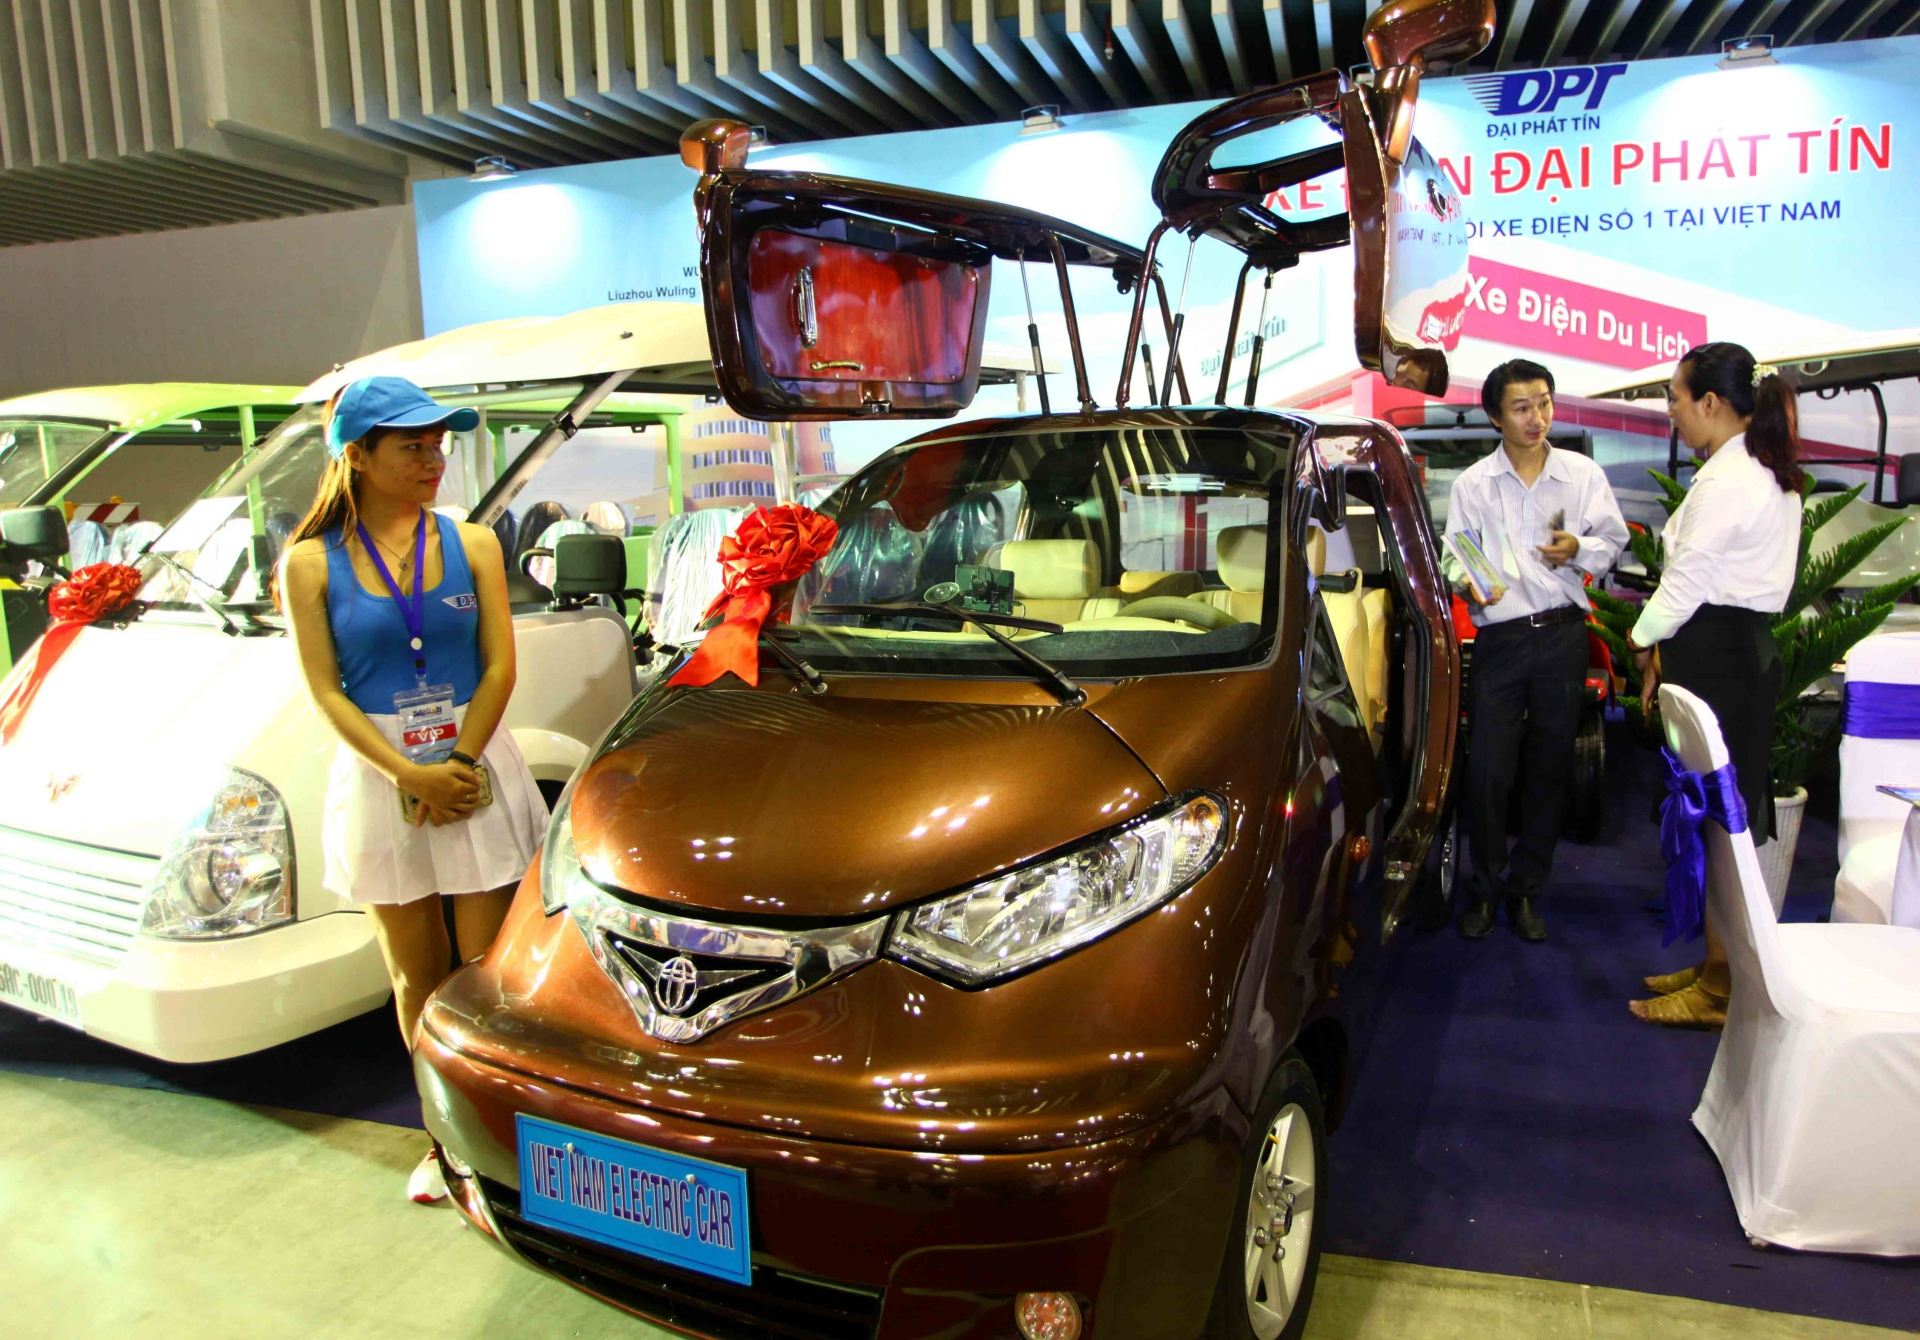 saigon autotech accessories 2018 stimulates supporting industries